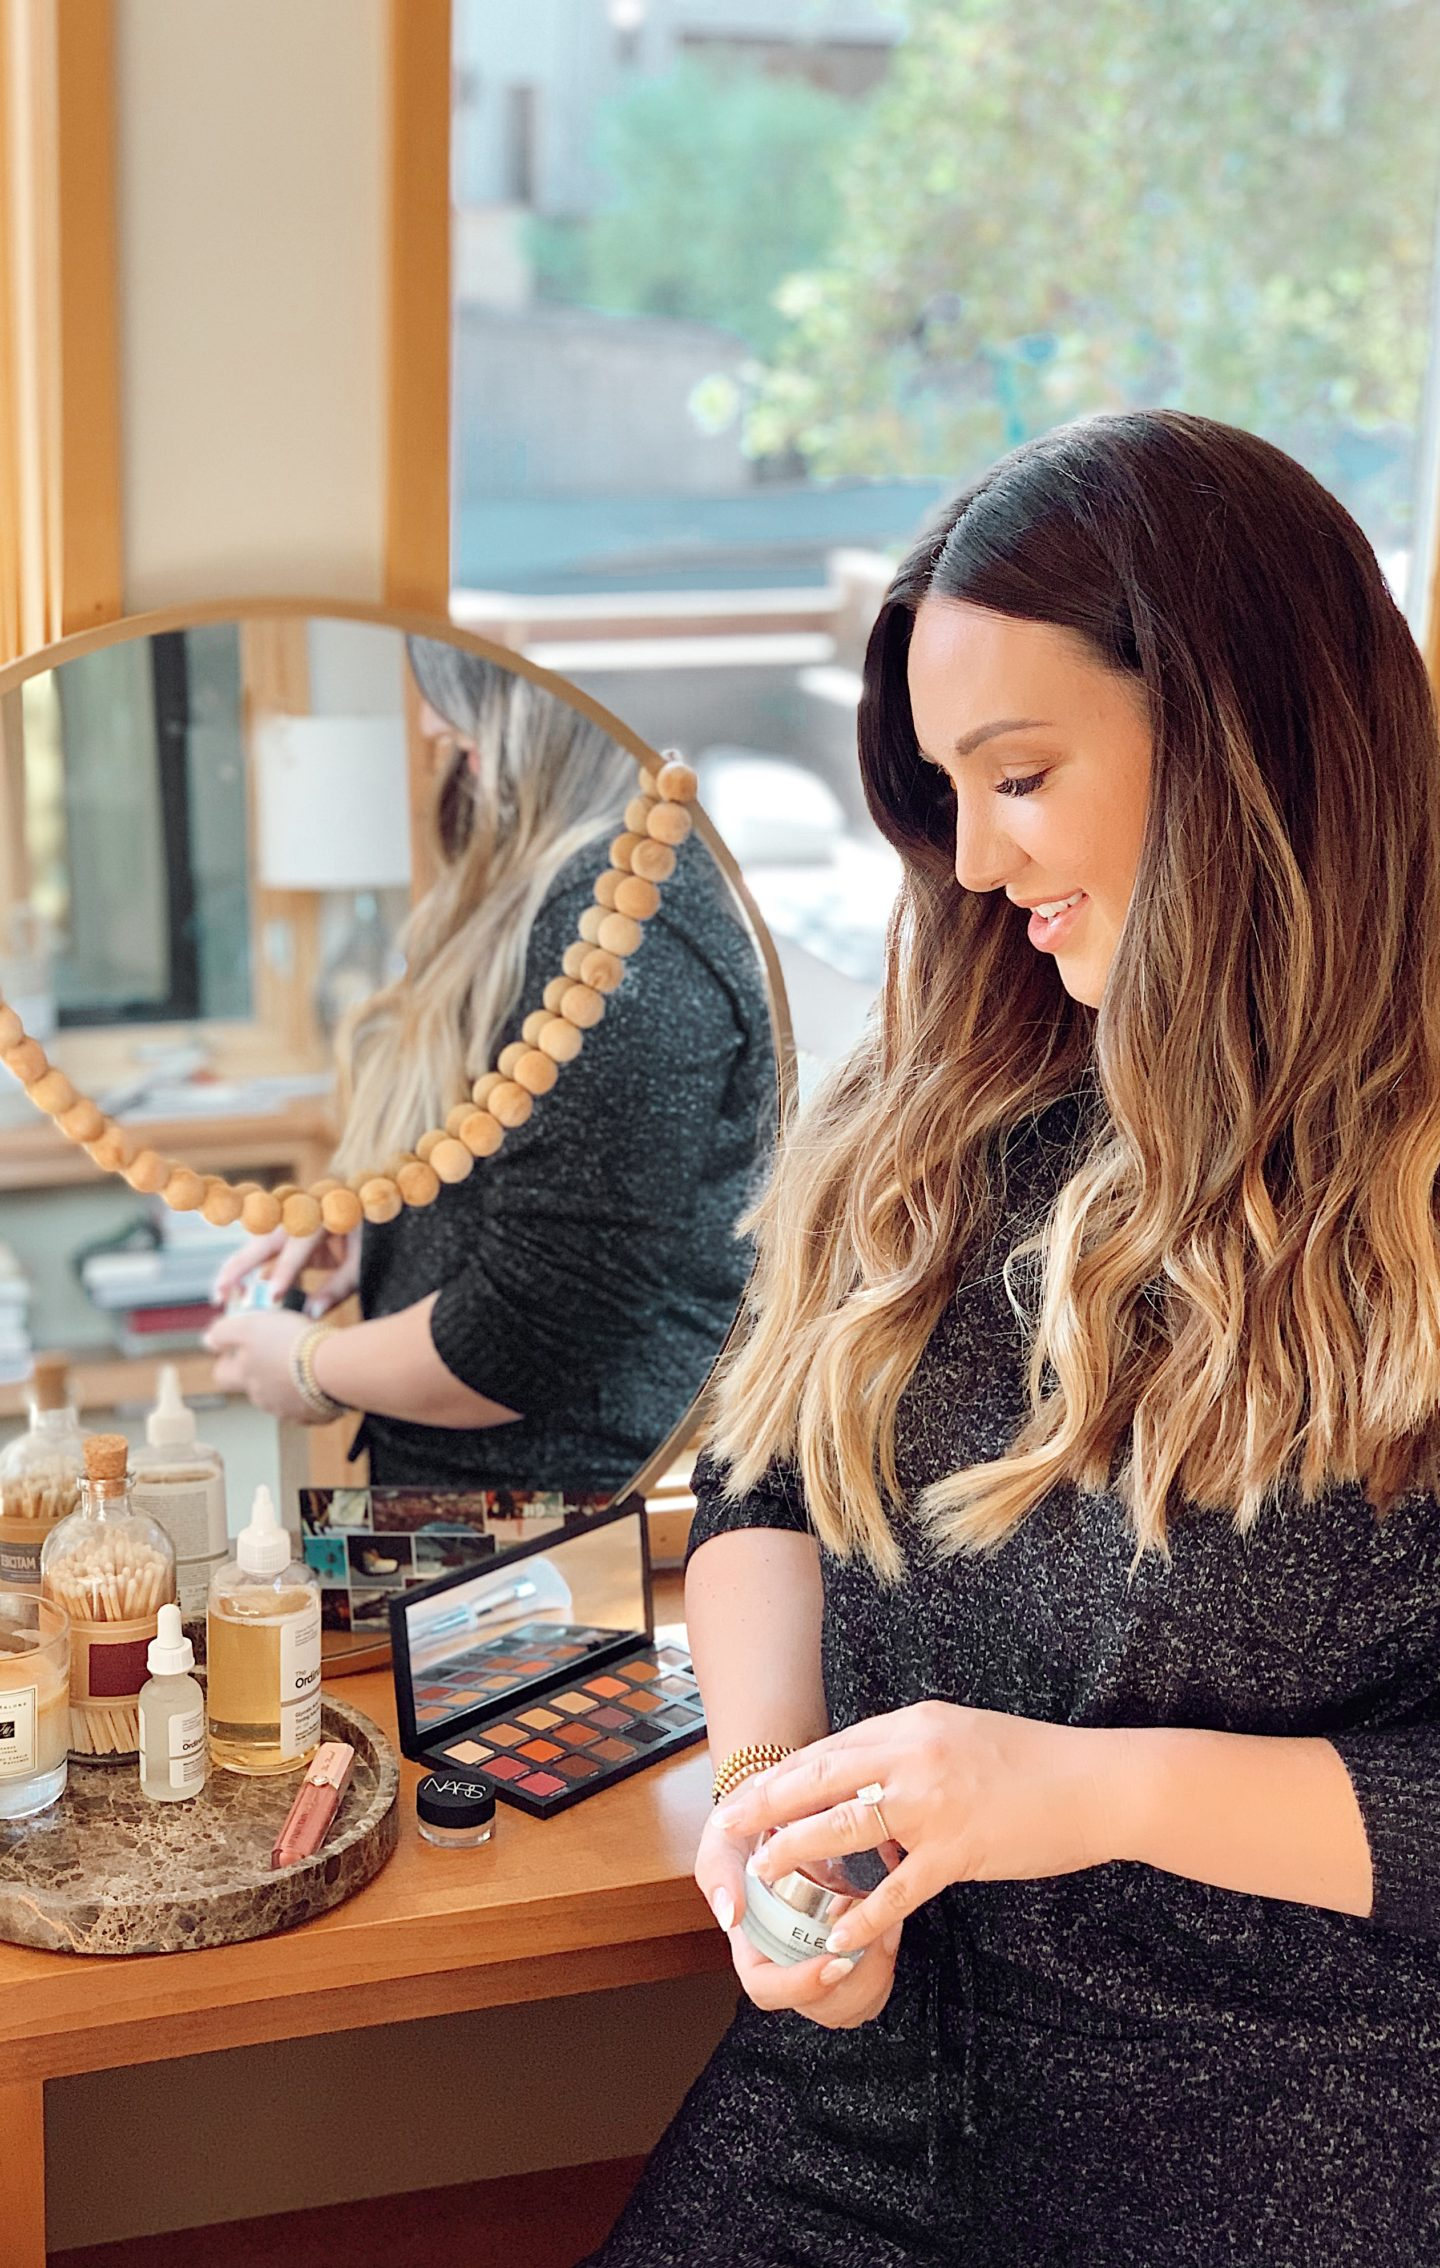 walmart fall beauty favorites |Fall Beauty by popular San Francisco beauty blog, Just Add Glam: image of Urban Decay makeup pallet, Nars makeup, and Too Faced lip injection lip gloss.